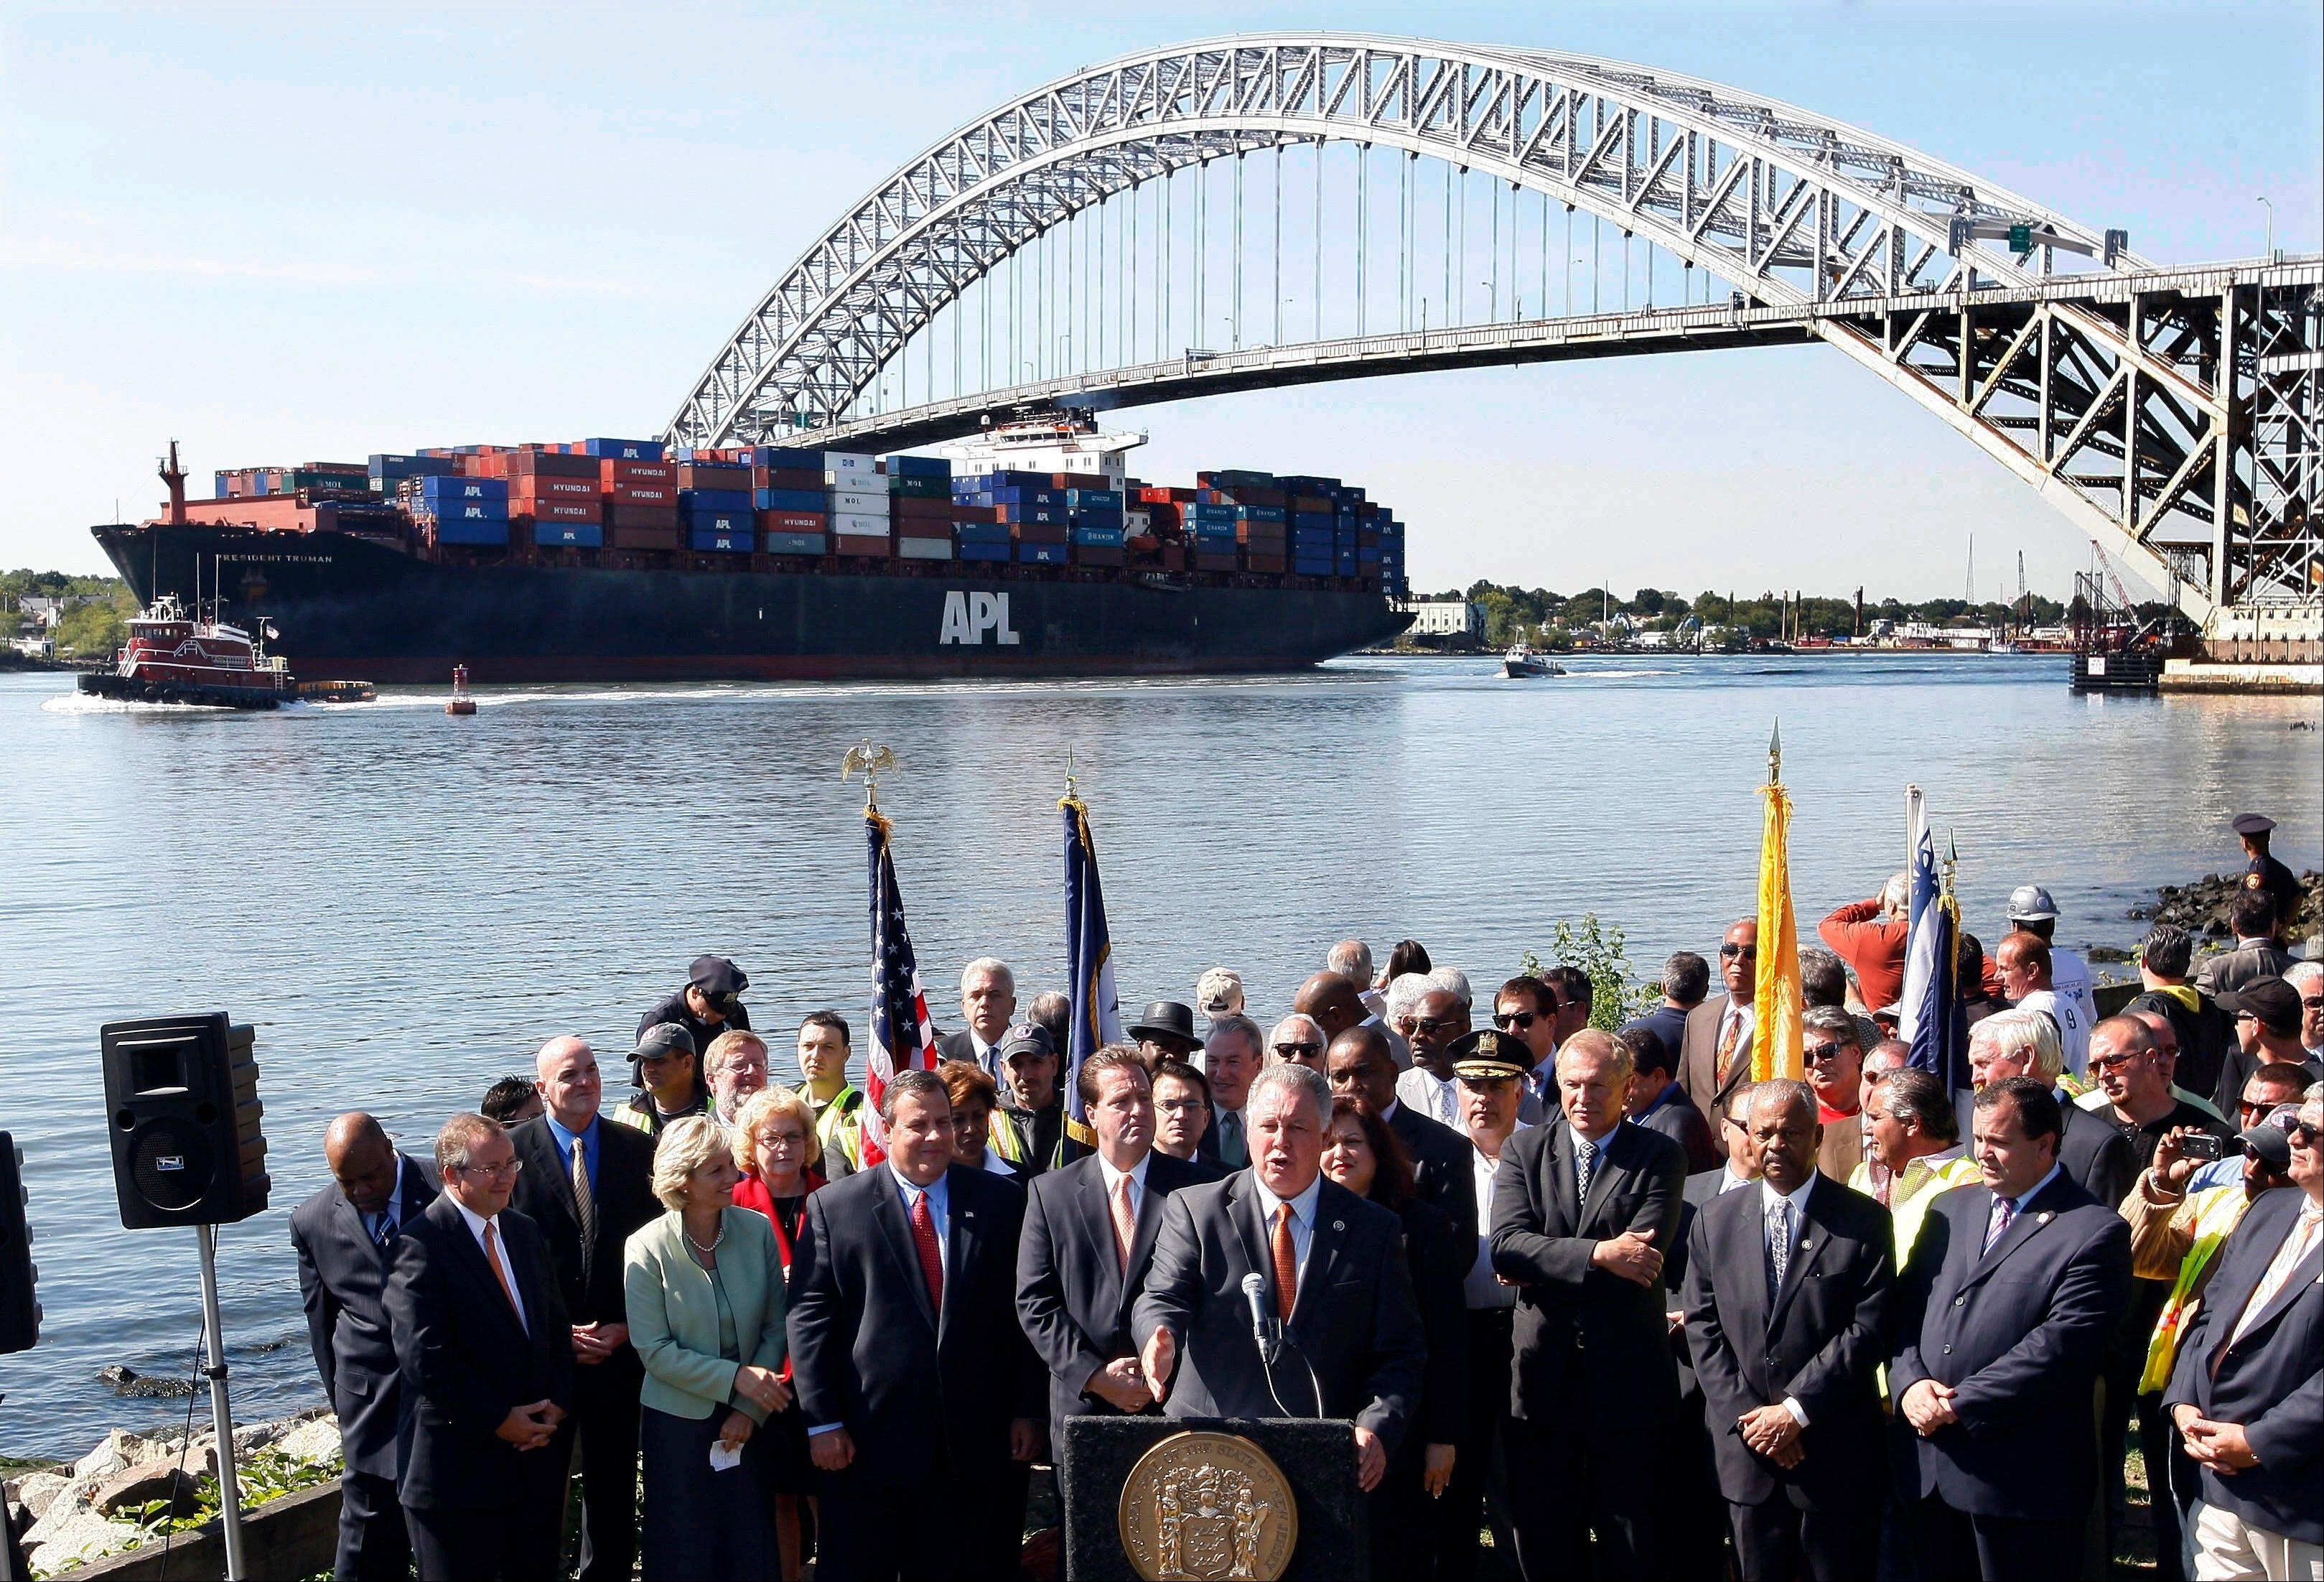 Associated Press/Sept. 21, 2010 The President Truman, a large cargo ship, passes under the Bayonne Bridge in Bayonne, N.J., as New Jersey Gov. Chris Christie, third left, front, and Lt. Gov. Kim Guadagno, fourth left, front, listen with others, as Rep. Albio Sires of New Jersey talks about plans to raise the height of the bridge to accommodate the larger next generation of cargo ships.